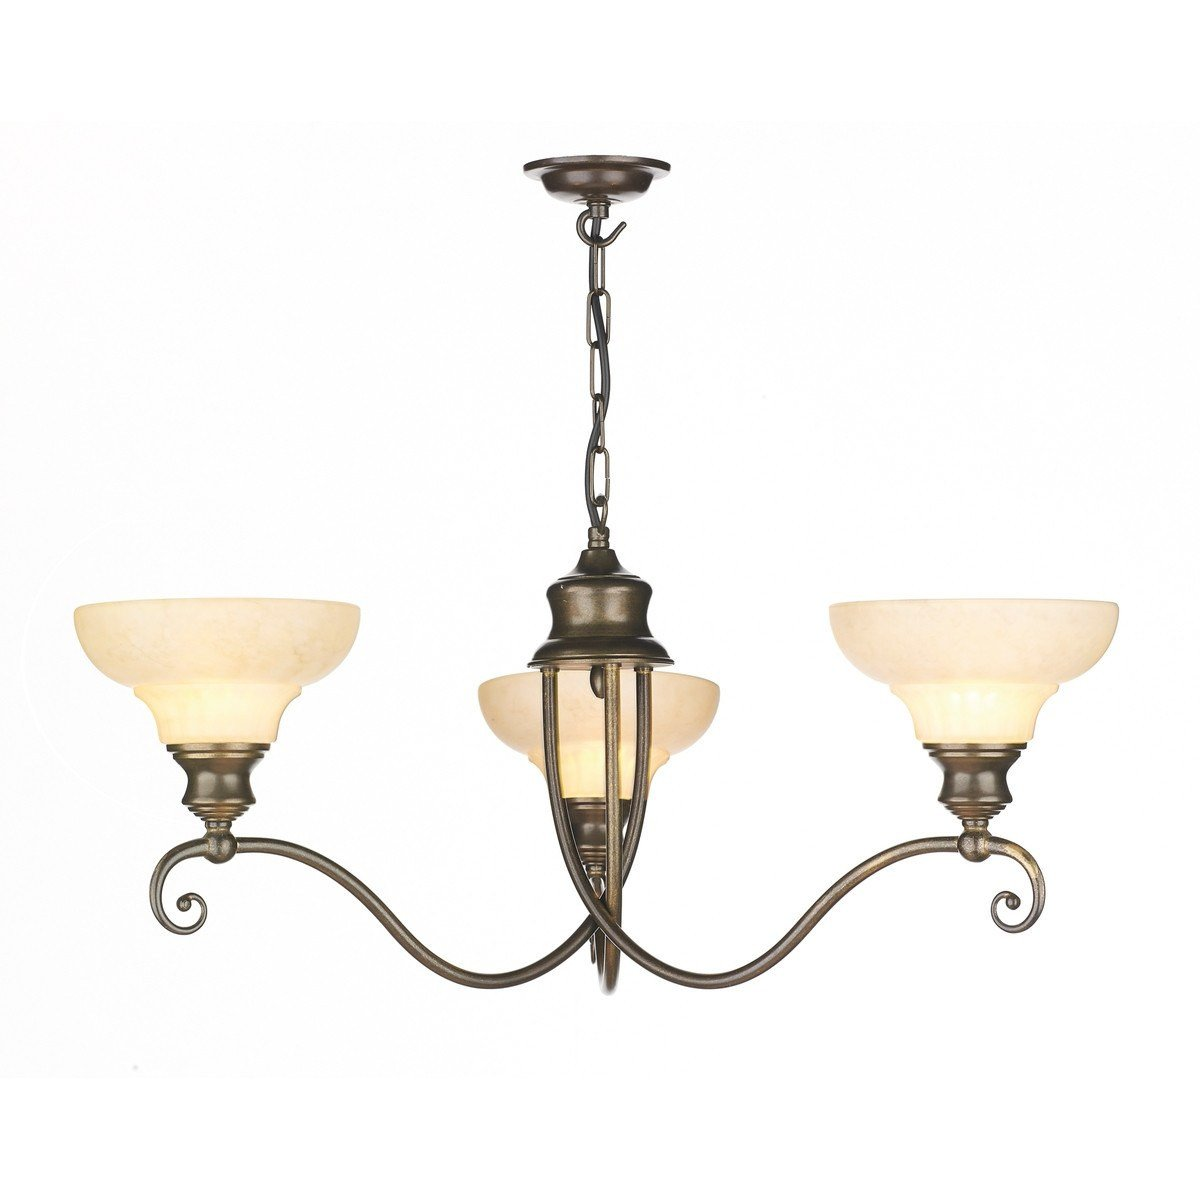 Stratford Brass 3 Lights Pendant Light - London Lighting - 1